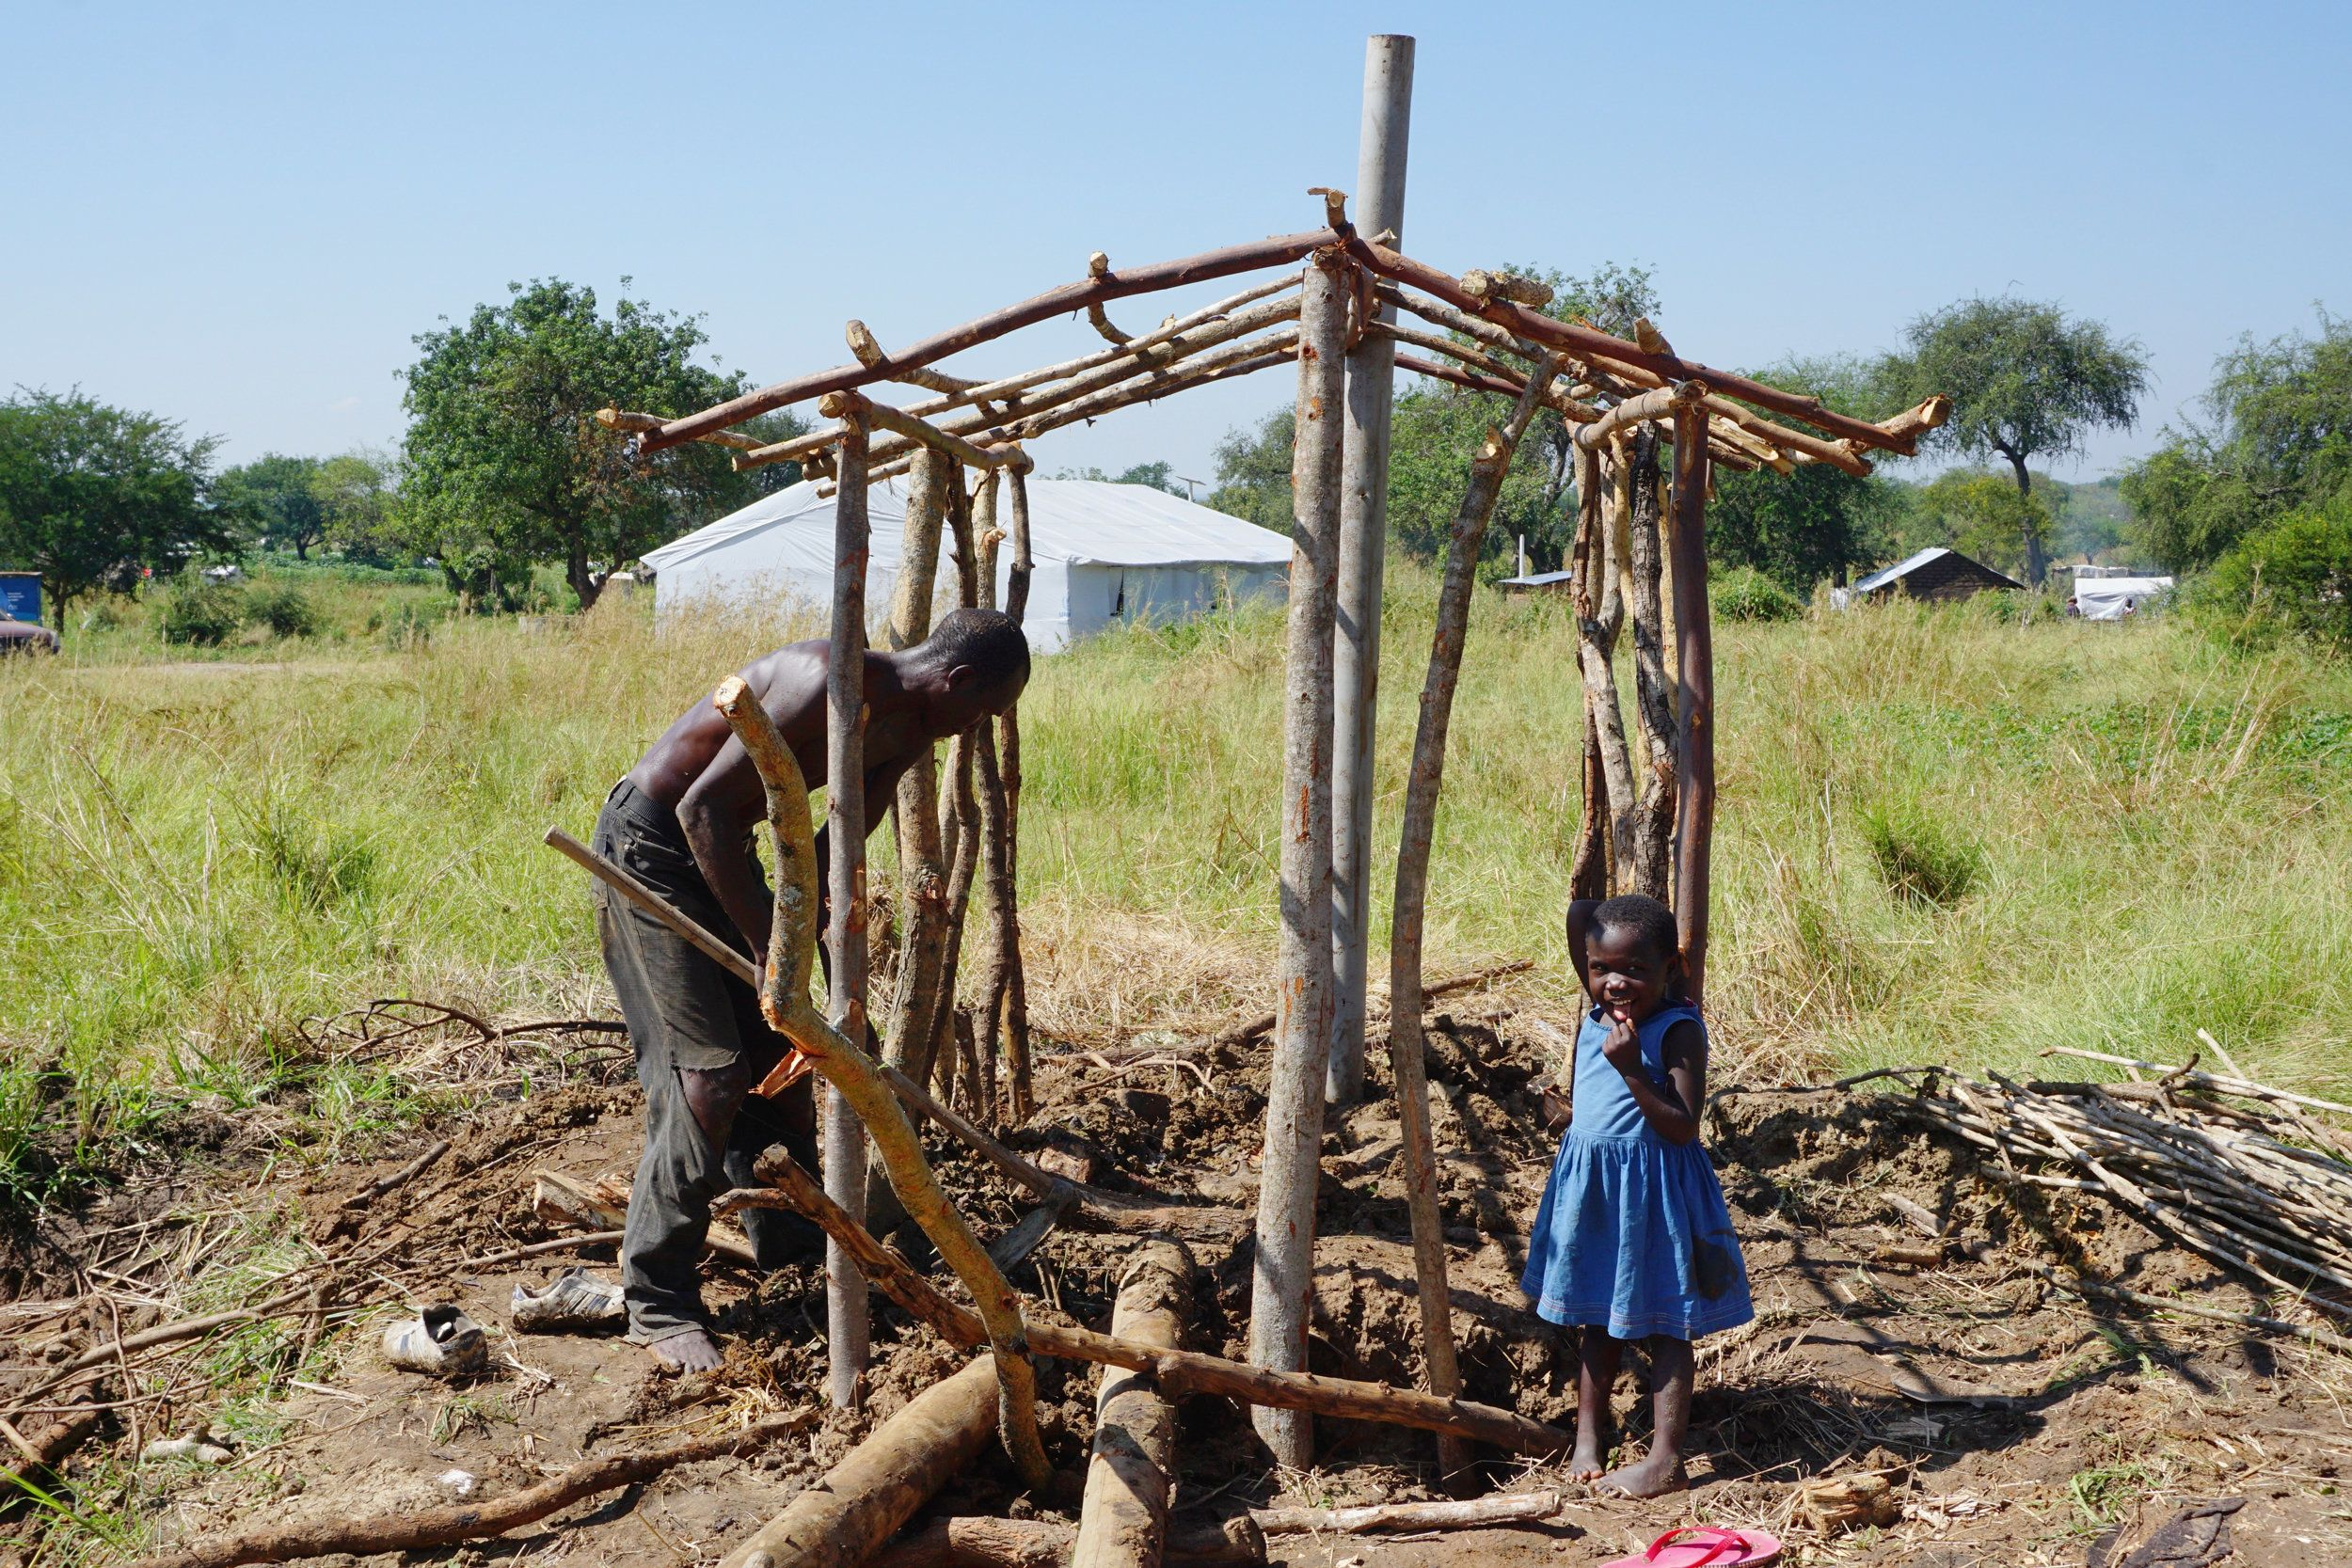 A South Sudanese refugee digs a pit latrine for his family in the Bidi Bidi refugee camp.